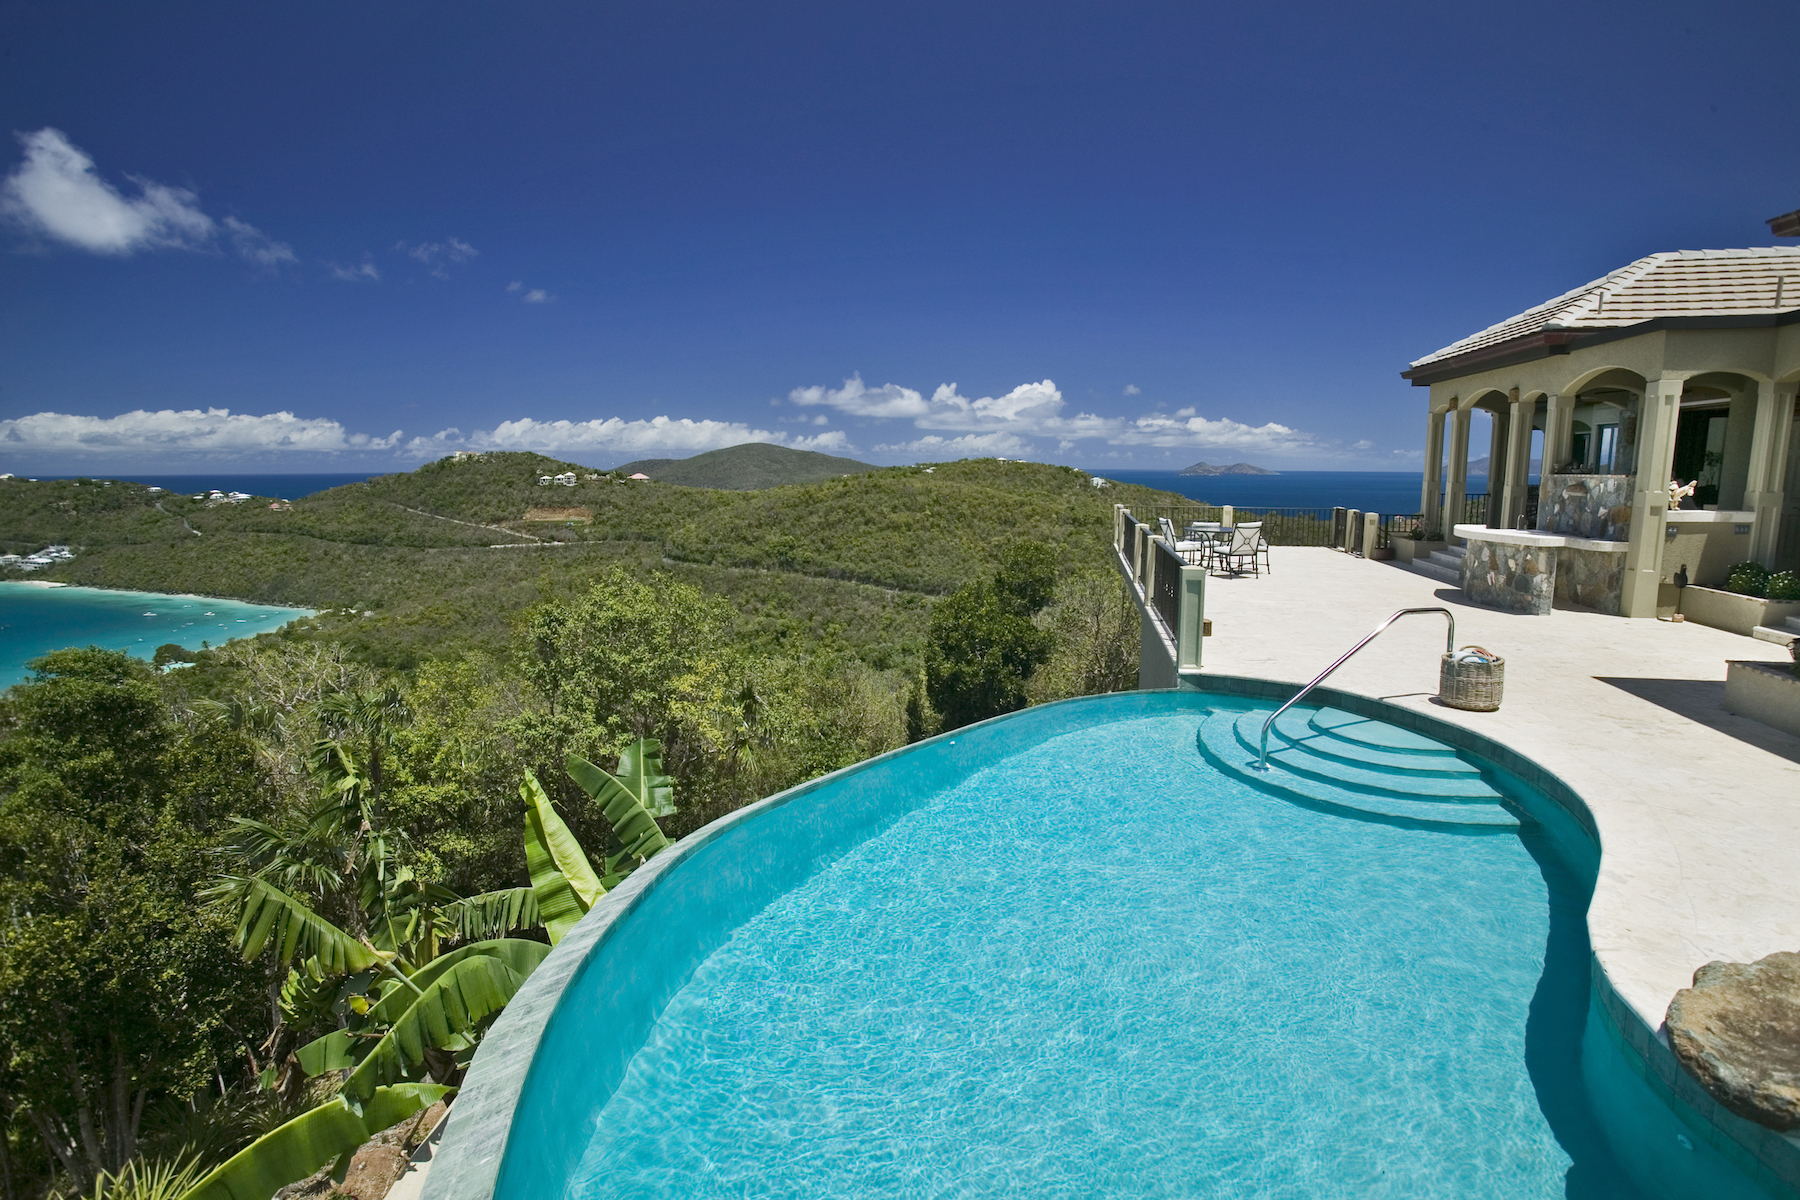 Additional photo for property listing at Estate Sherpenjewel 1A-4 Estate Canaan & Sherpenjewel St Thomas, Virgin Islands 00802 United States Virgin Islands